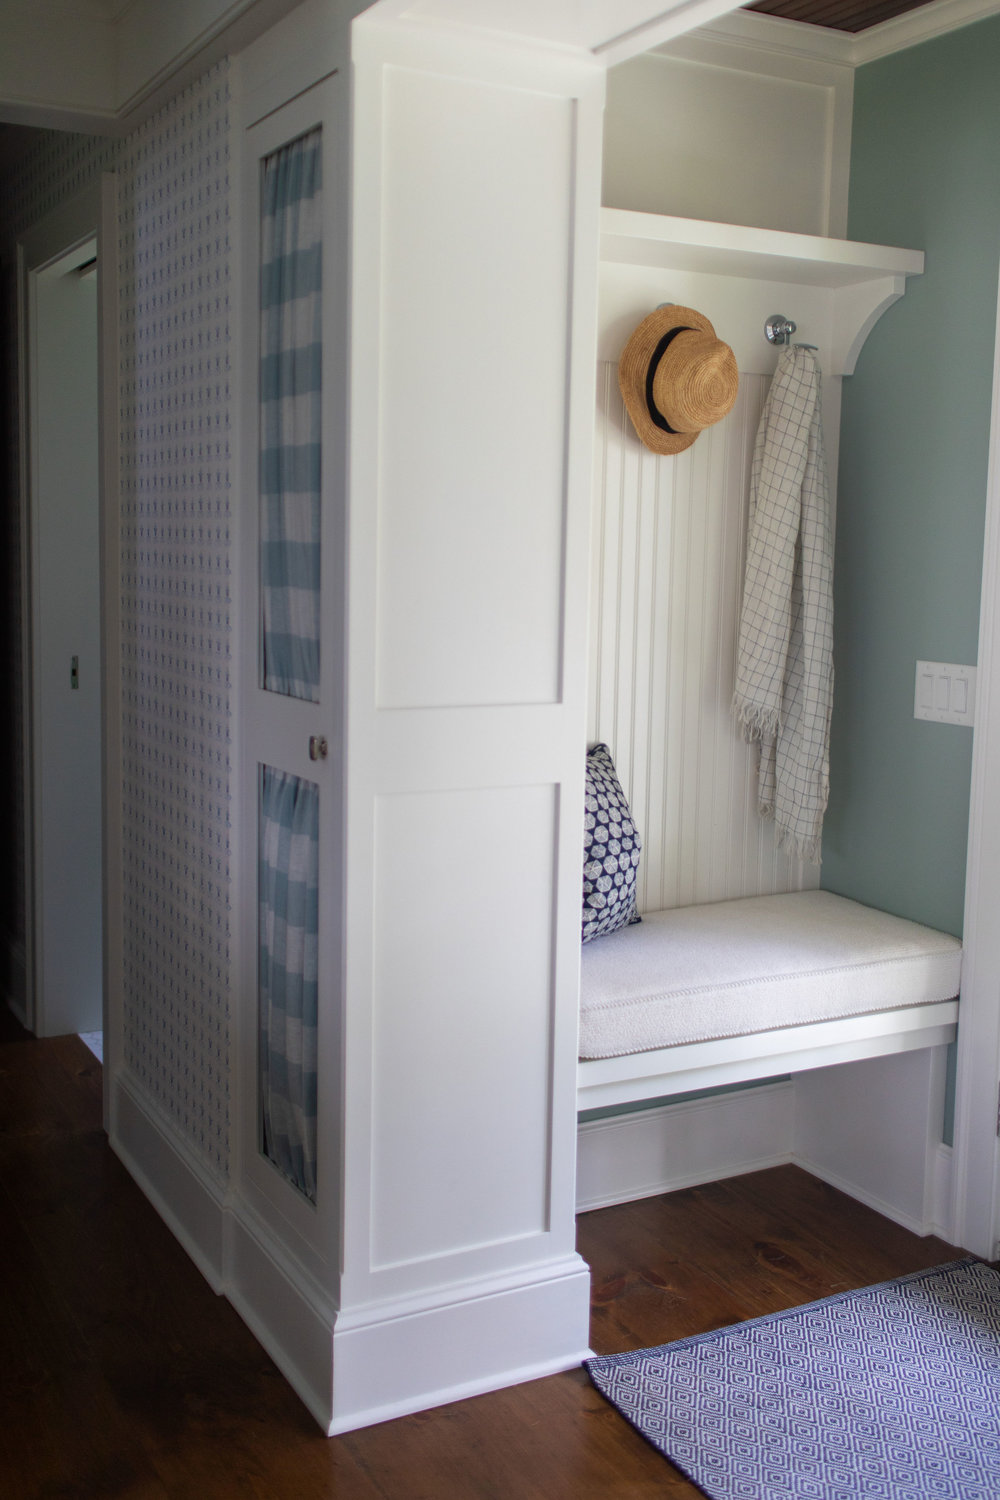 Built in storage ideas by Teaselwood Design, Skaneateles New York interior designer